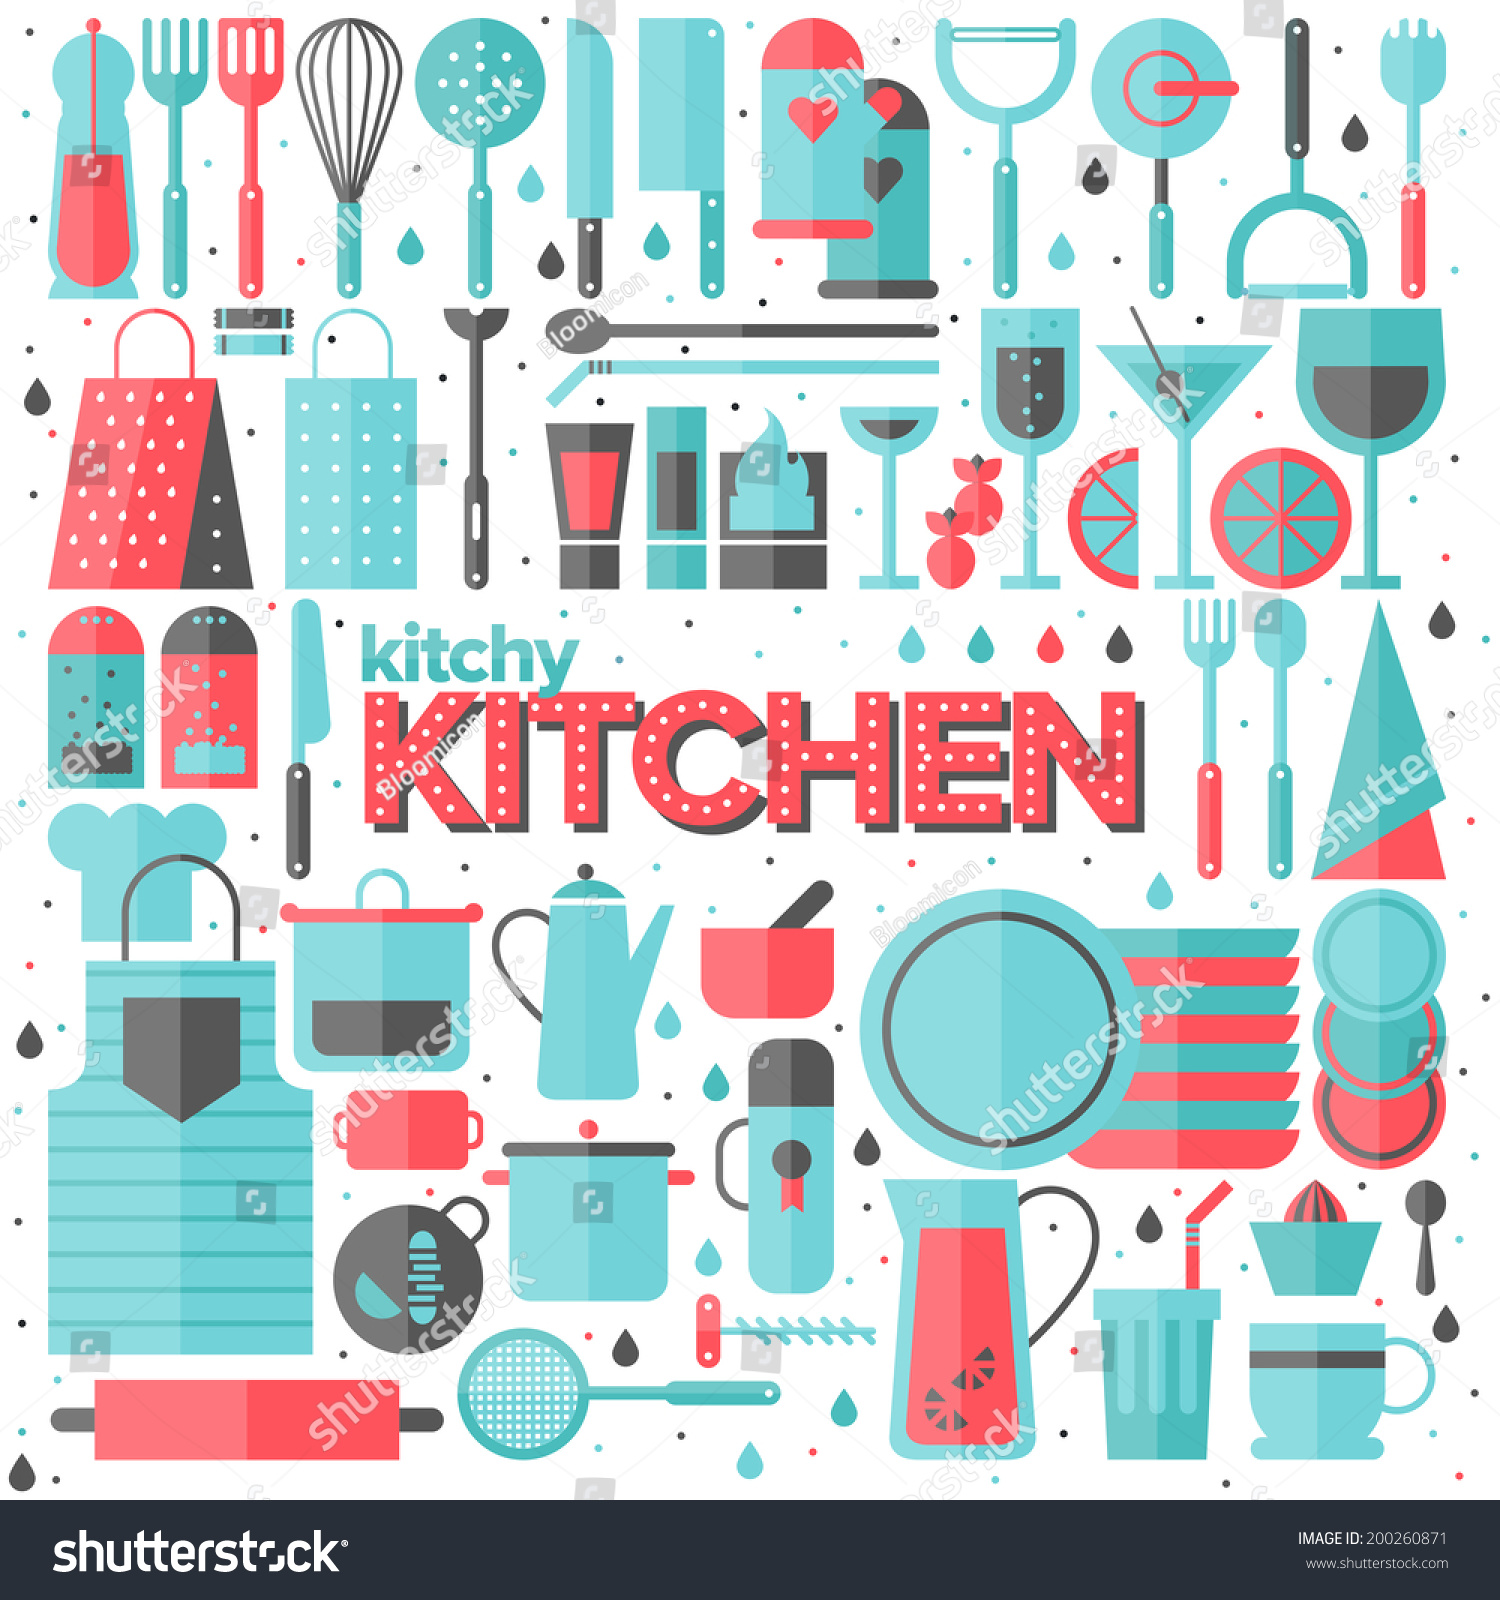 Kitchen Poster Food As Alphabet With Food Name: Flat Icons Set Of Kitchen Utensil And Collection Of